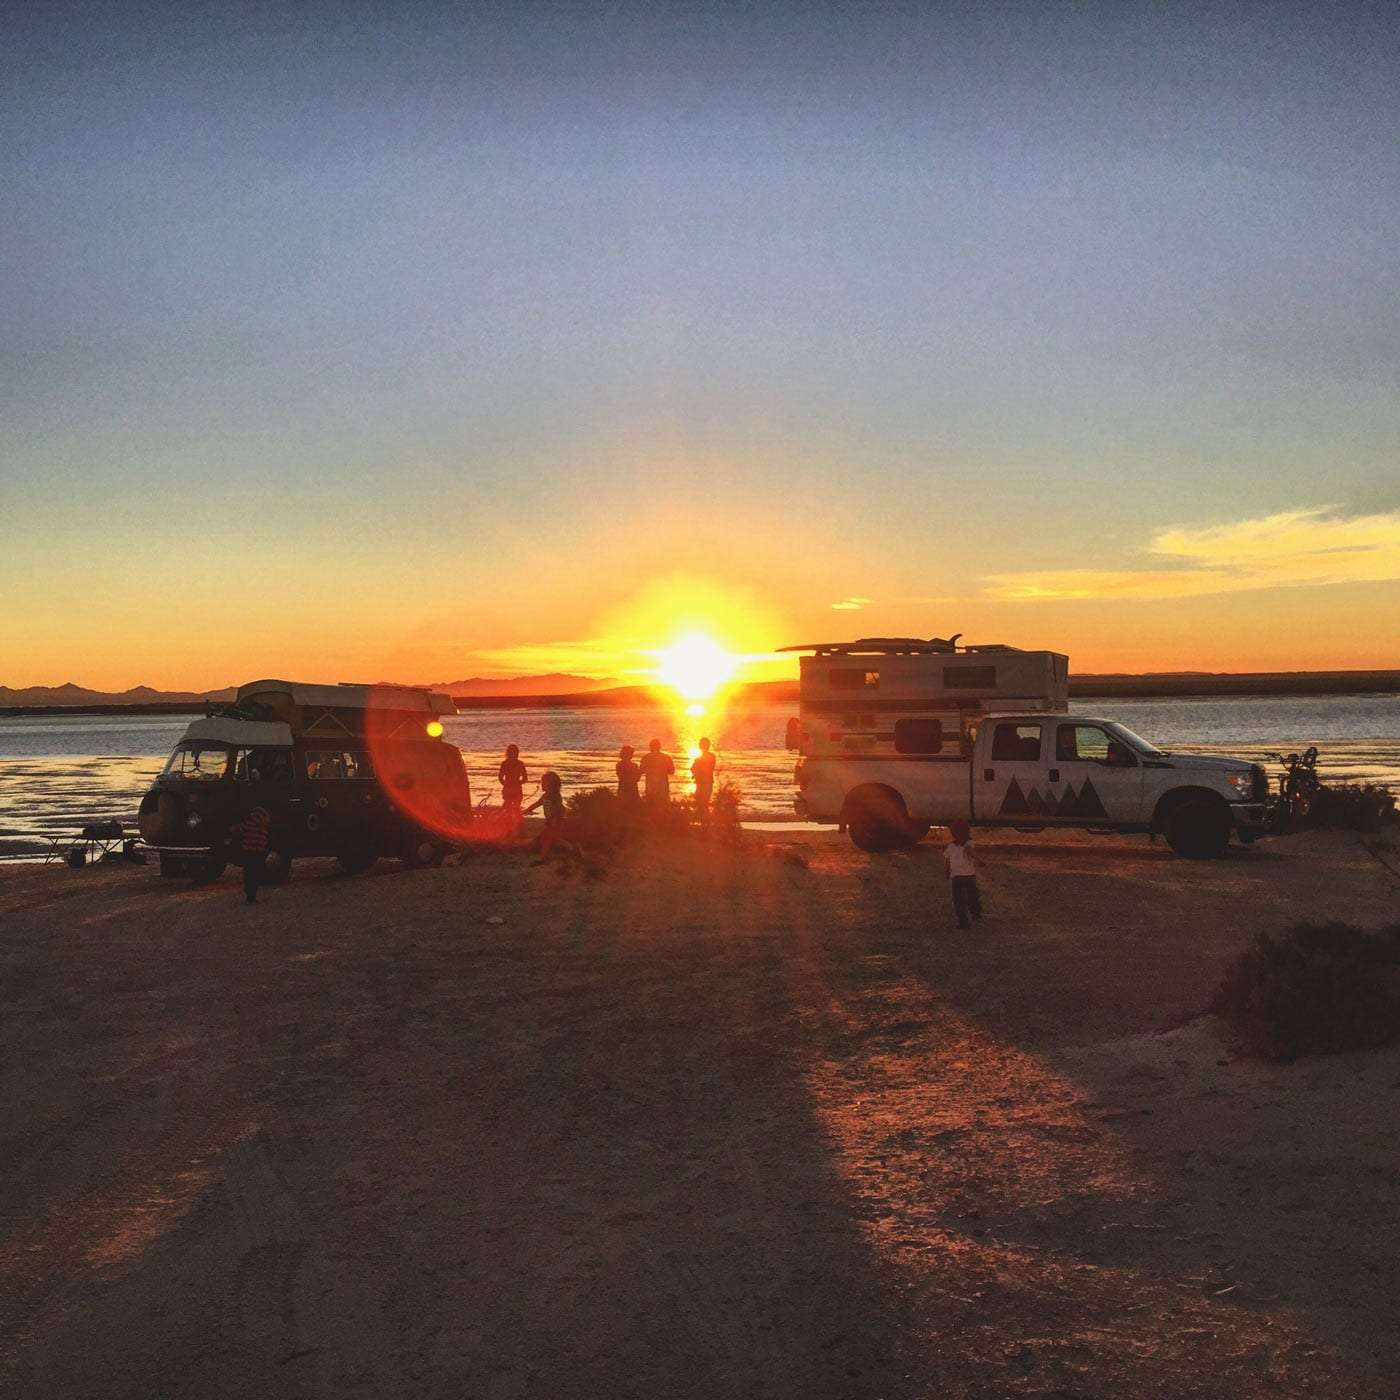 Sunset over the Pacific, a truck camper, volkswagen bus and their families surround